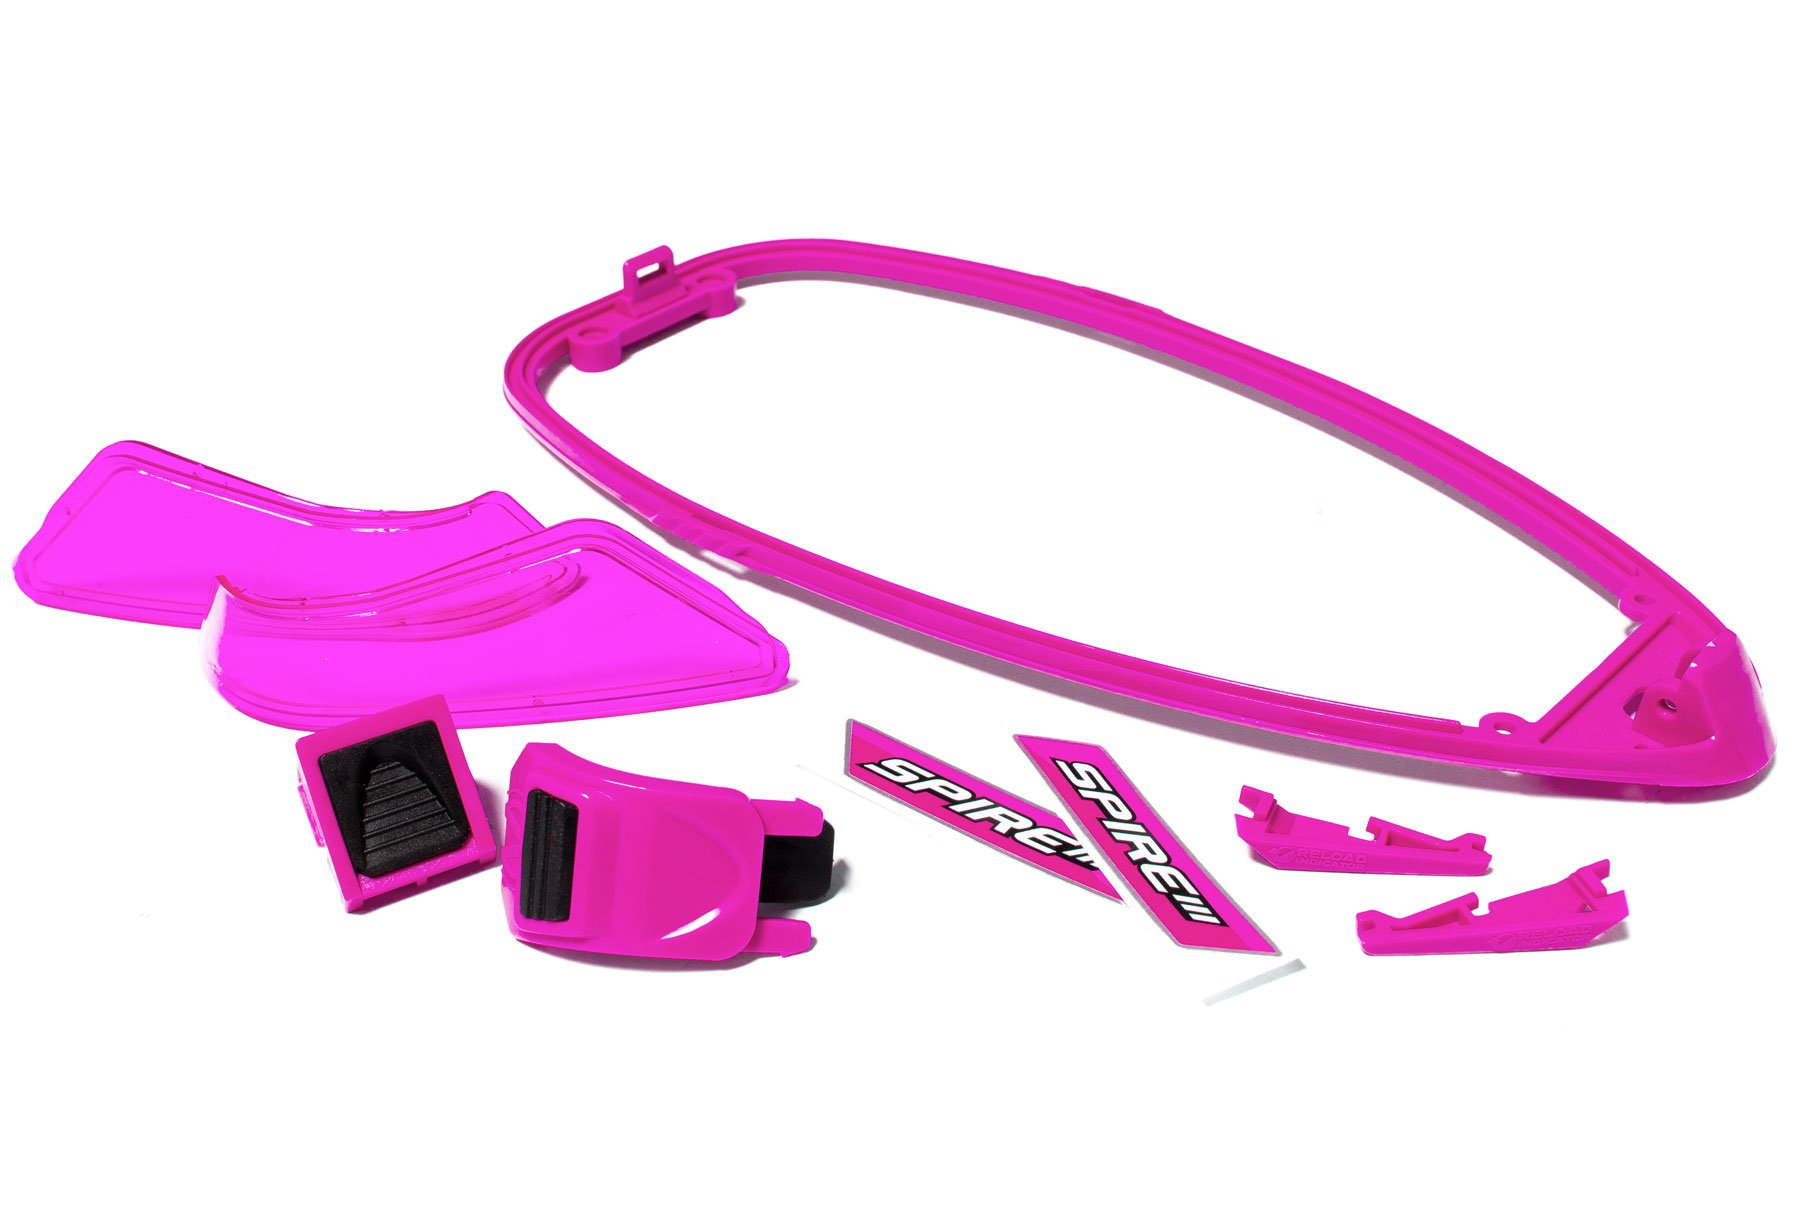 Virtue Paintball Spire III Loader Color Kit (Pink) by Virtue Paintball